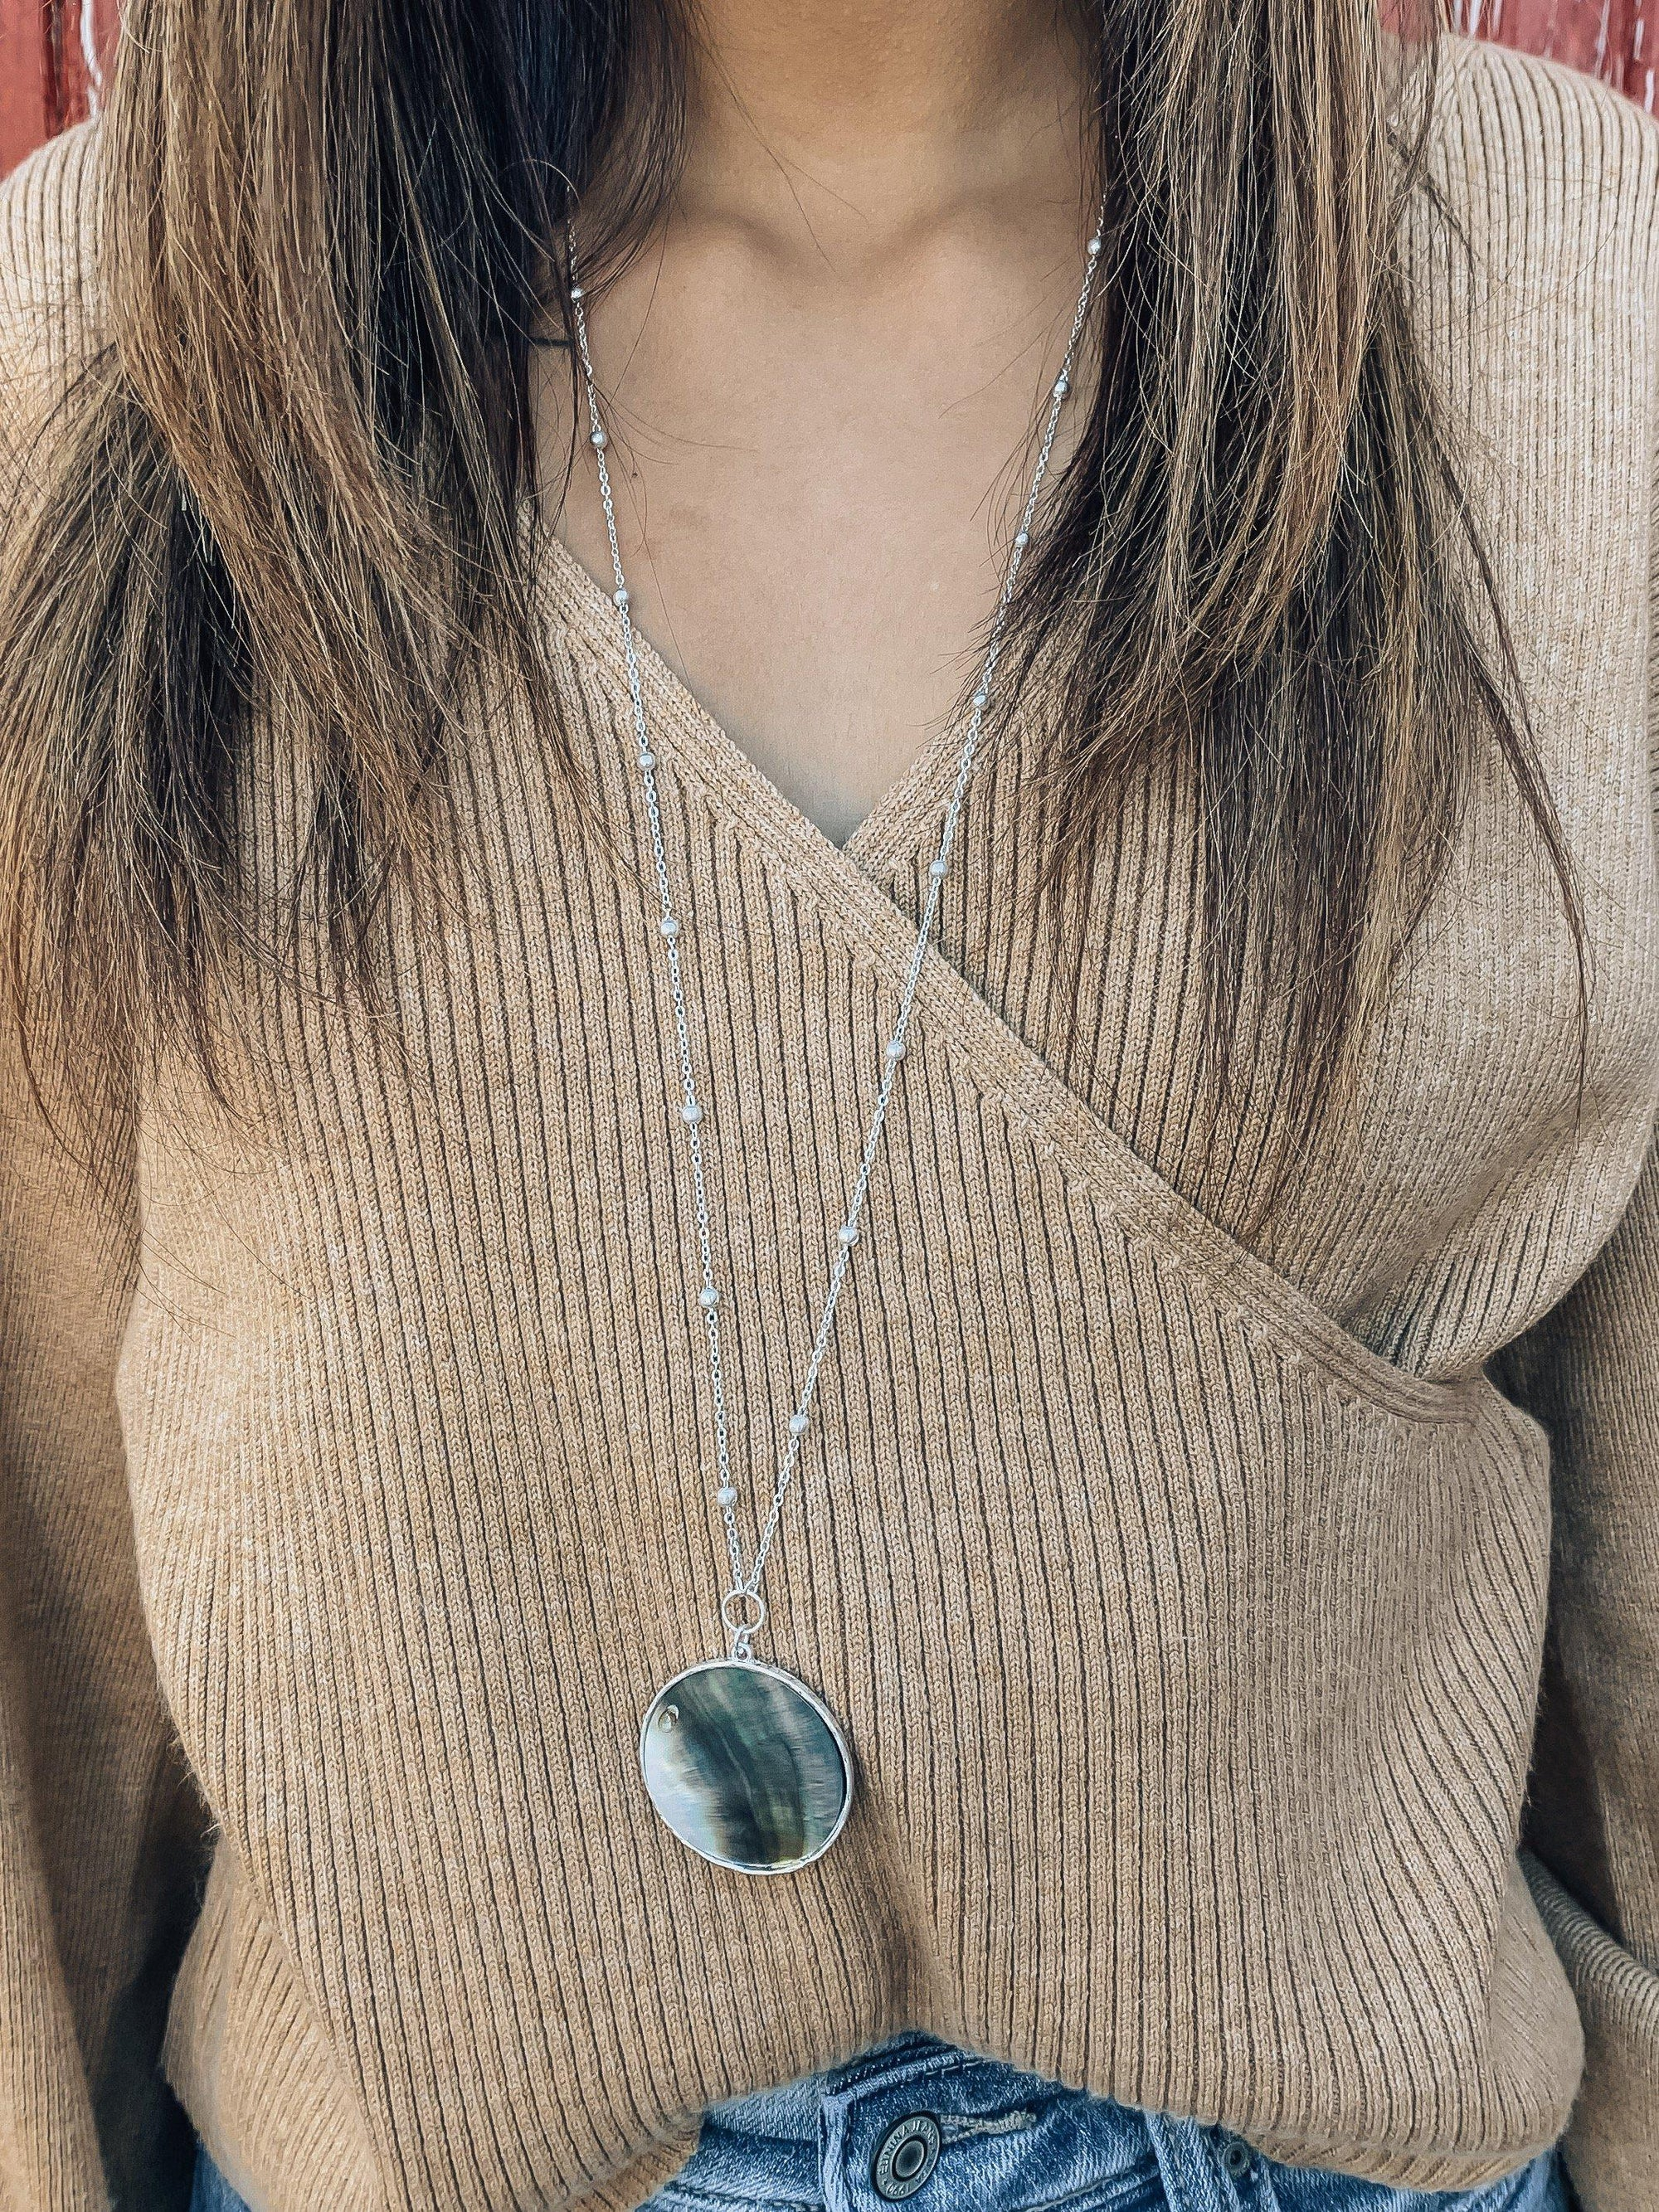 Ocean Eye Necklace